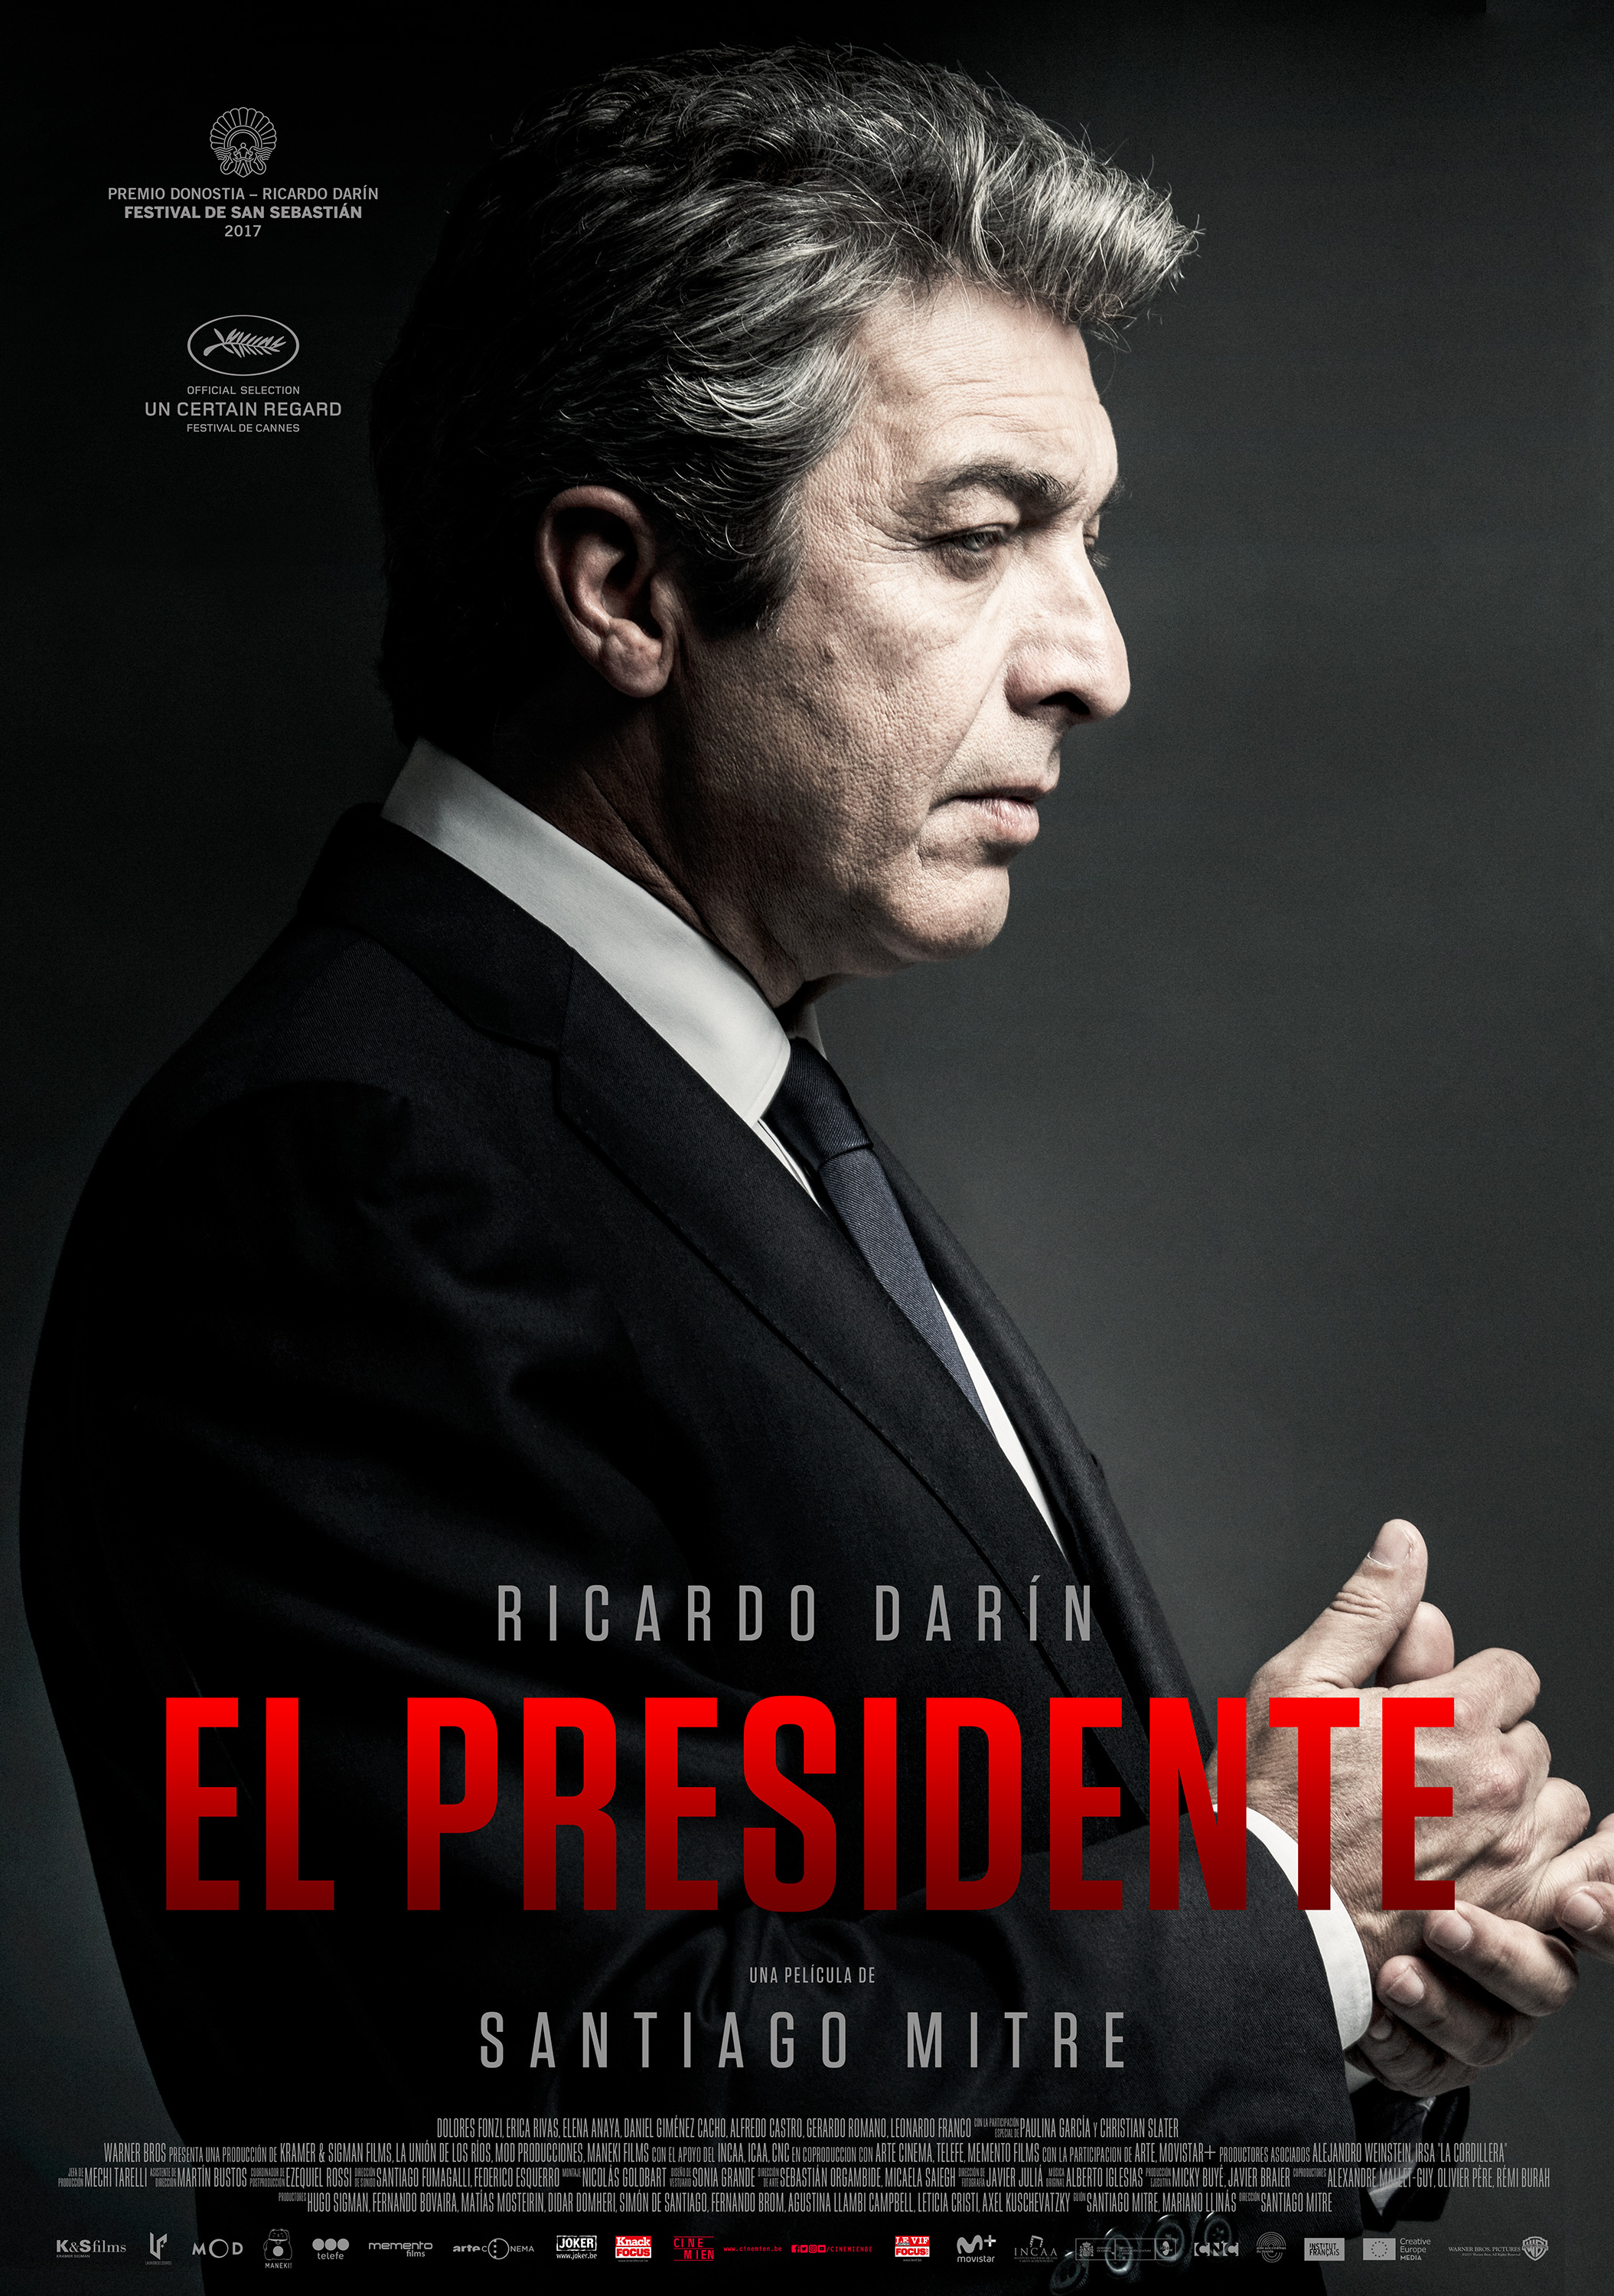 a movie review on el presidente Write a review for el presidente share your experience select a rating select a rating top reviews of el presidente 35 stars - based on 2 reviews  2 reviews 2 reviews with an average rating of 35 stars have been consolidated because they have only ratings and no comments.